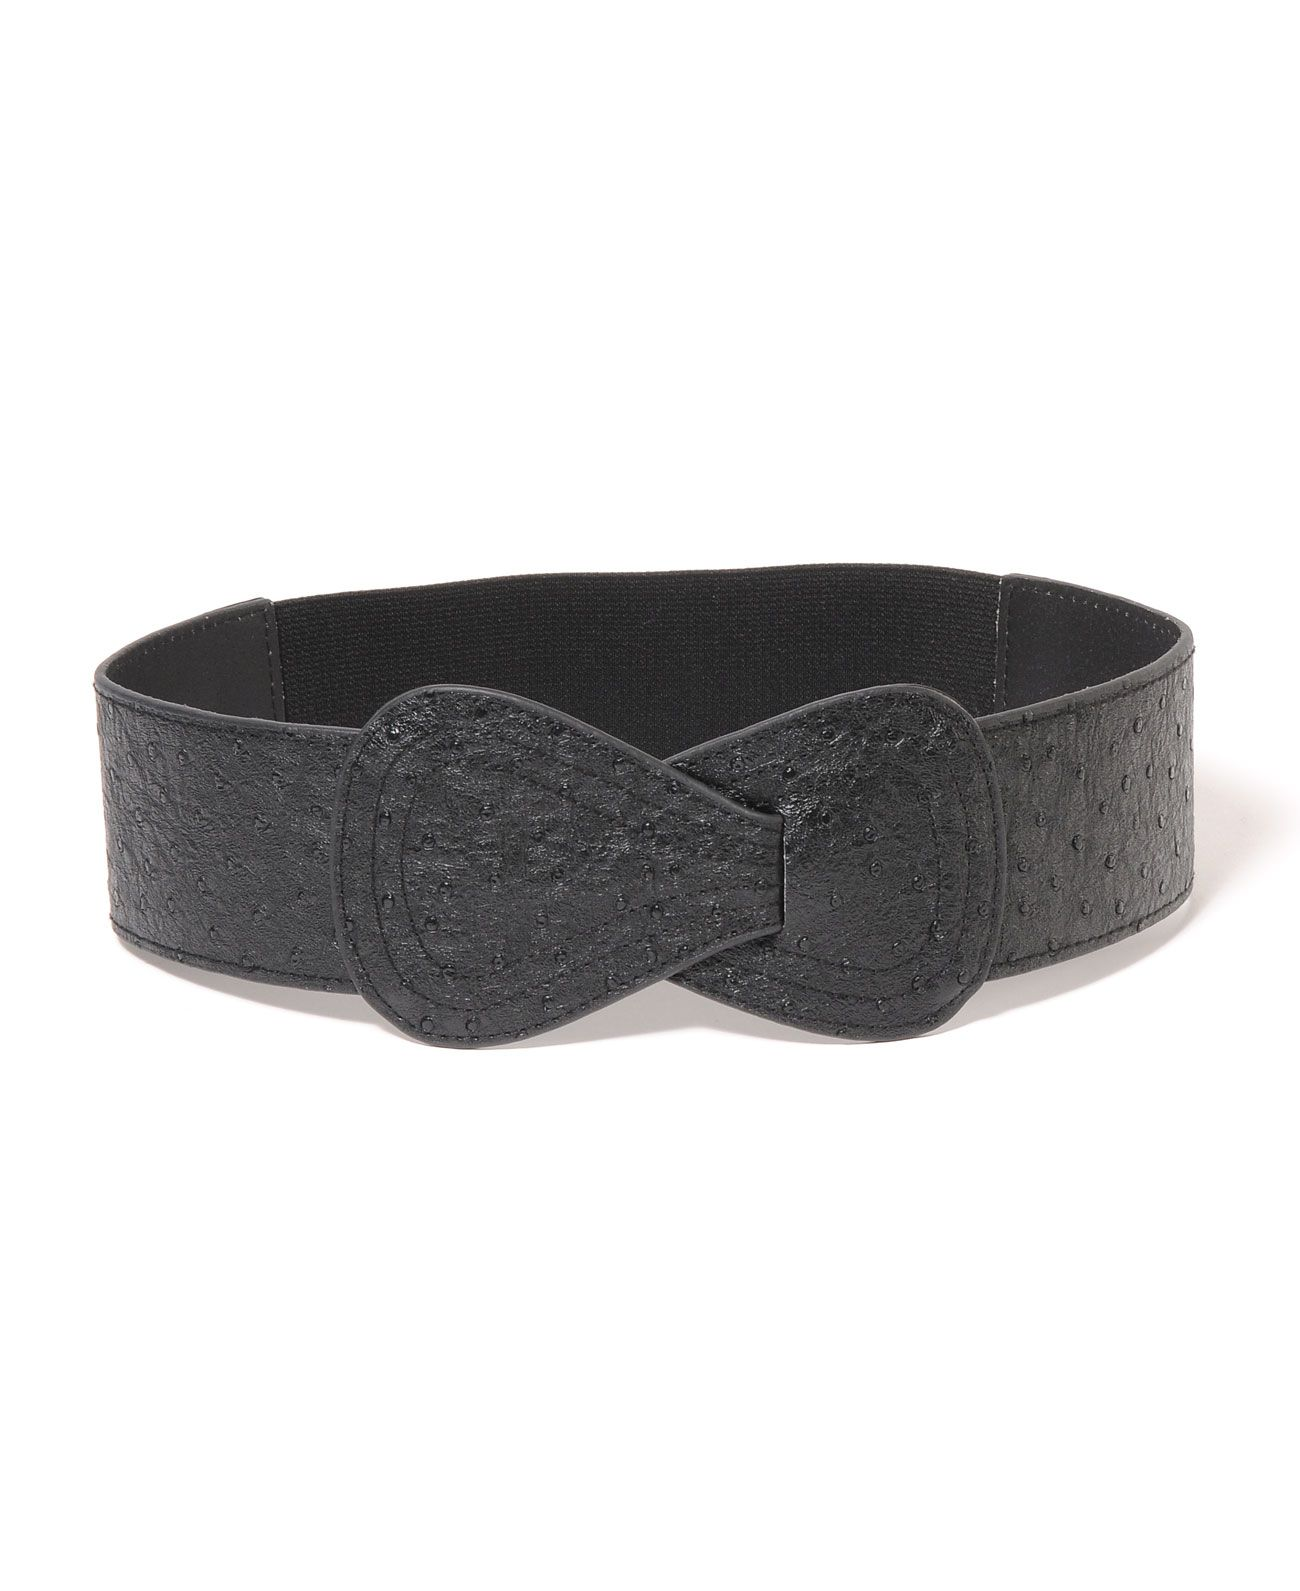 Elise M Collection Ostritch Stretch Belt With Hook